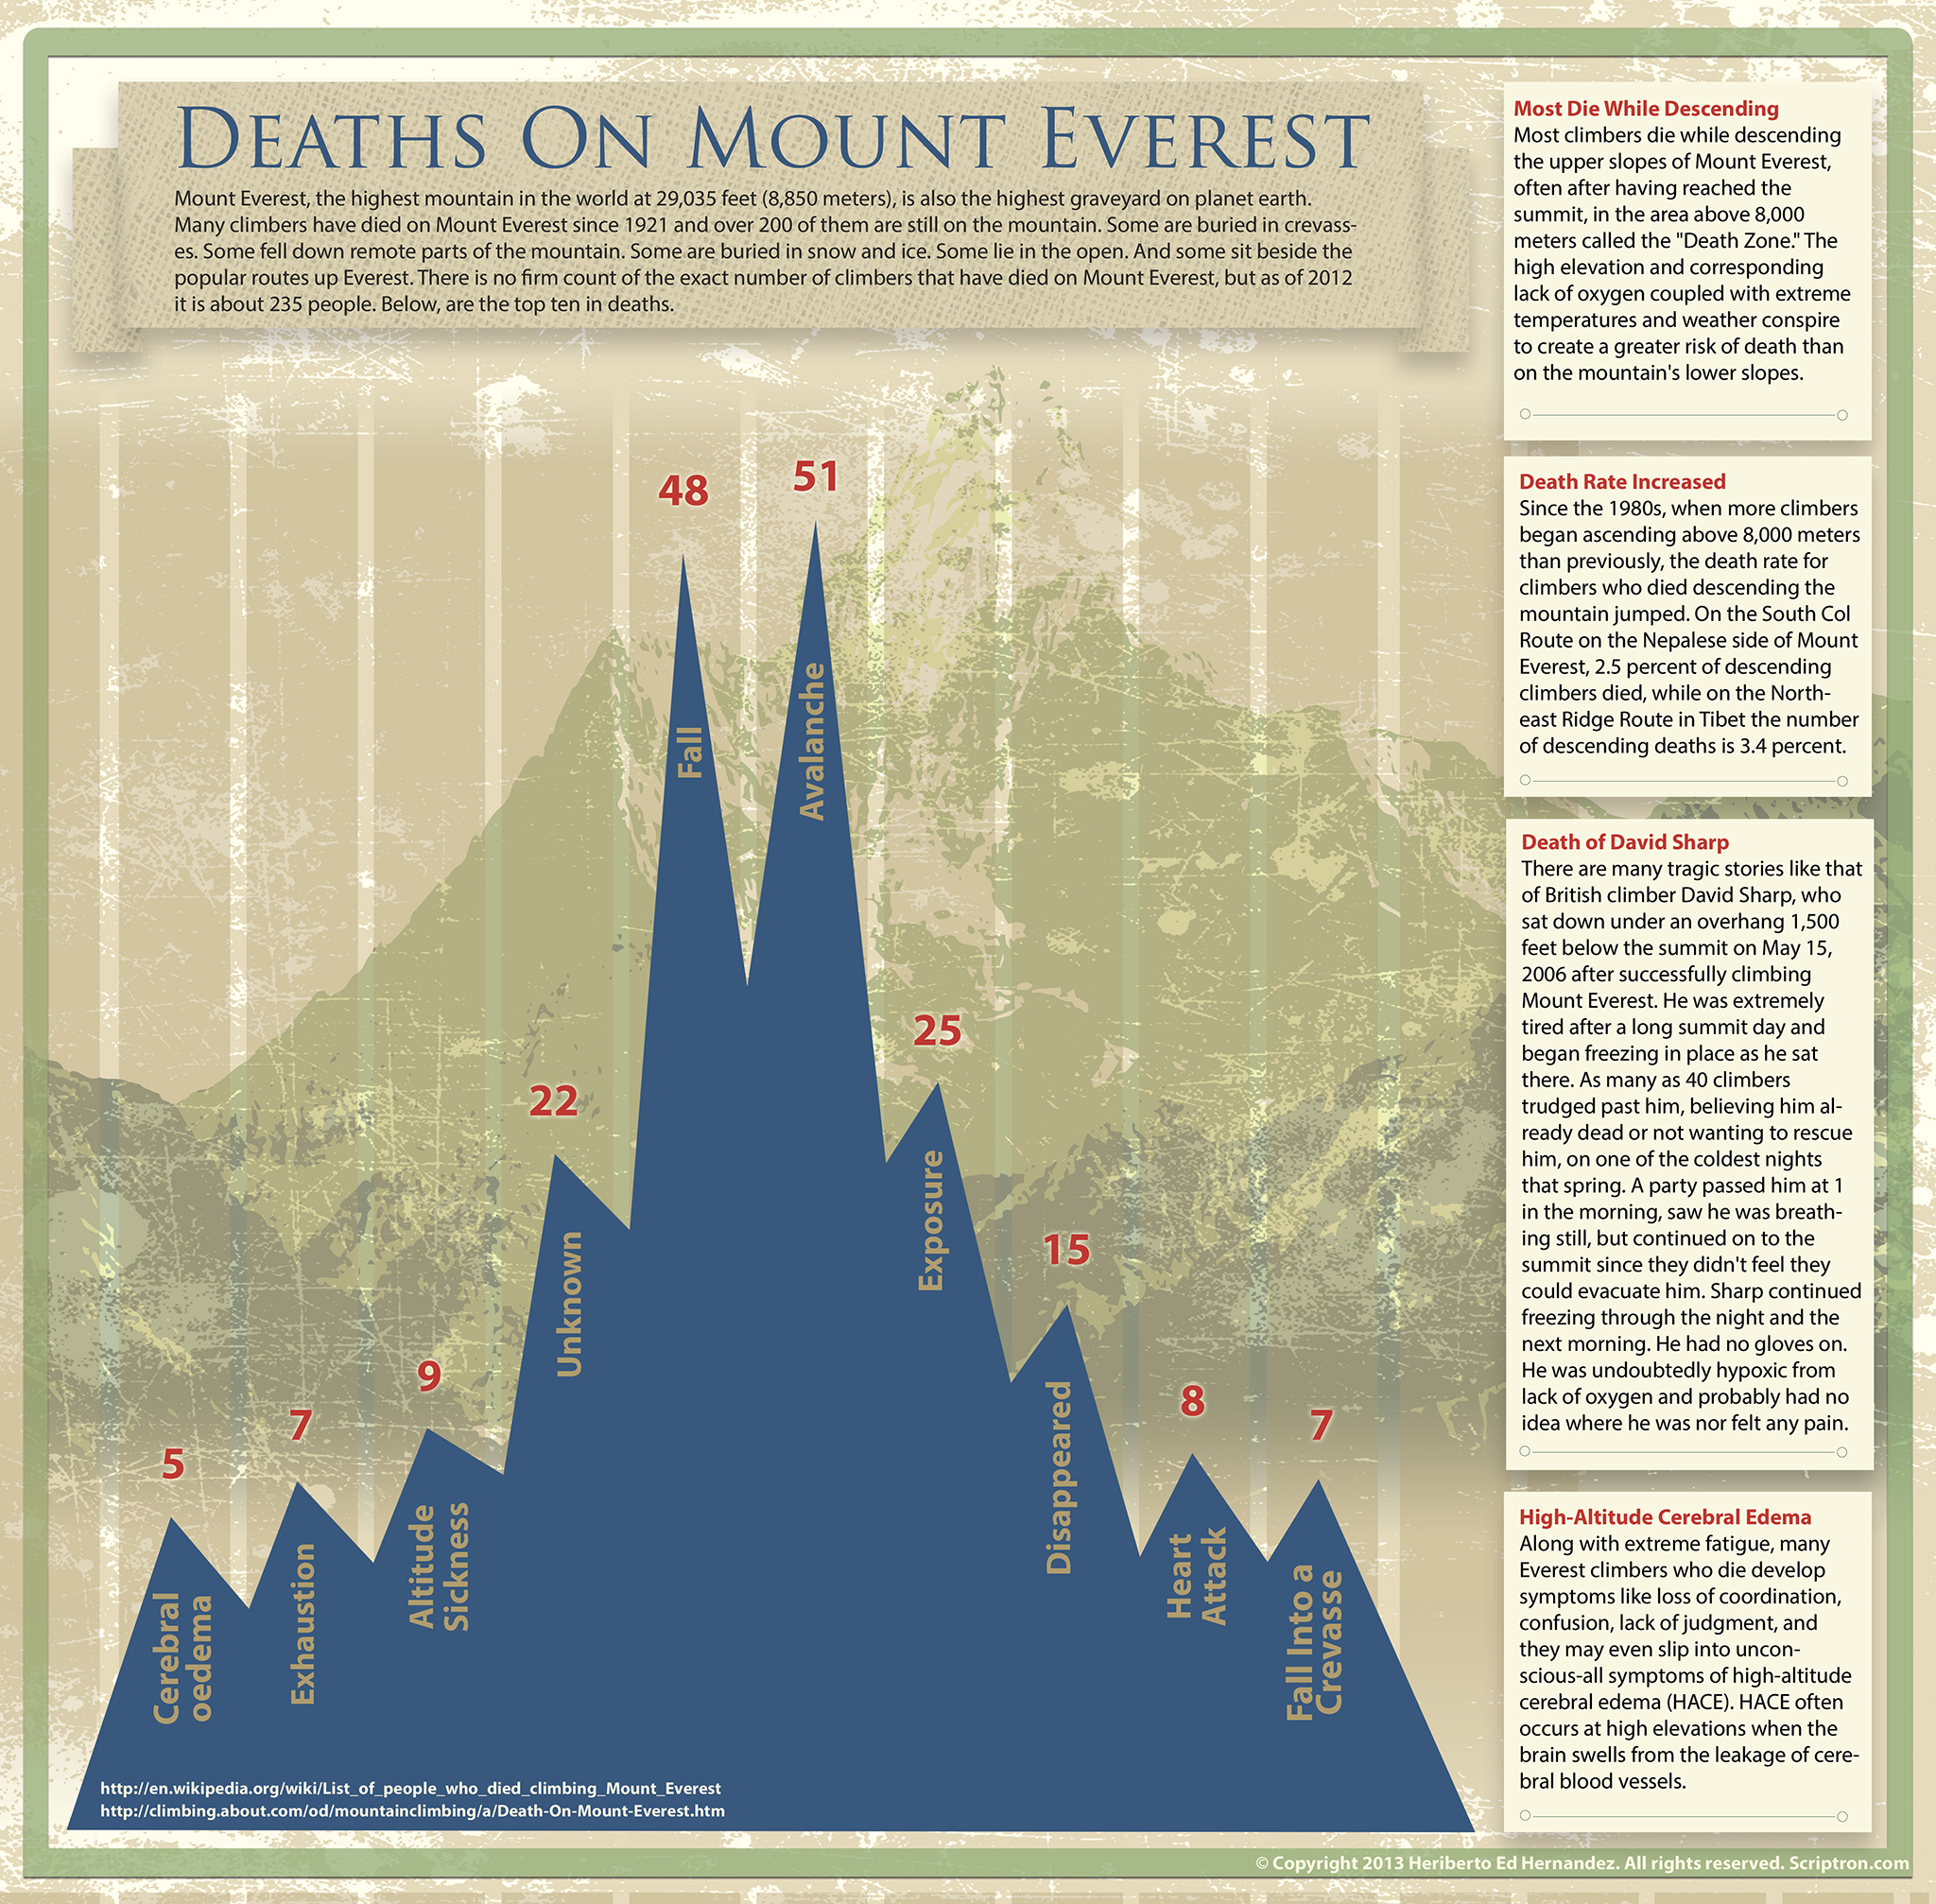 http://visual.ly/deaths-mount-everest?utm_source=visually_embed